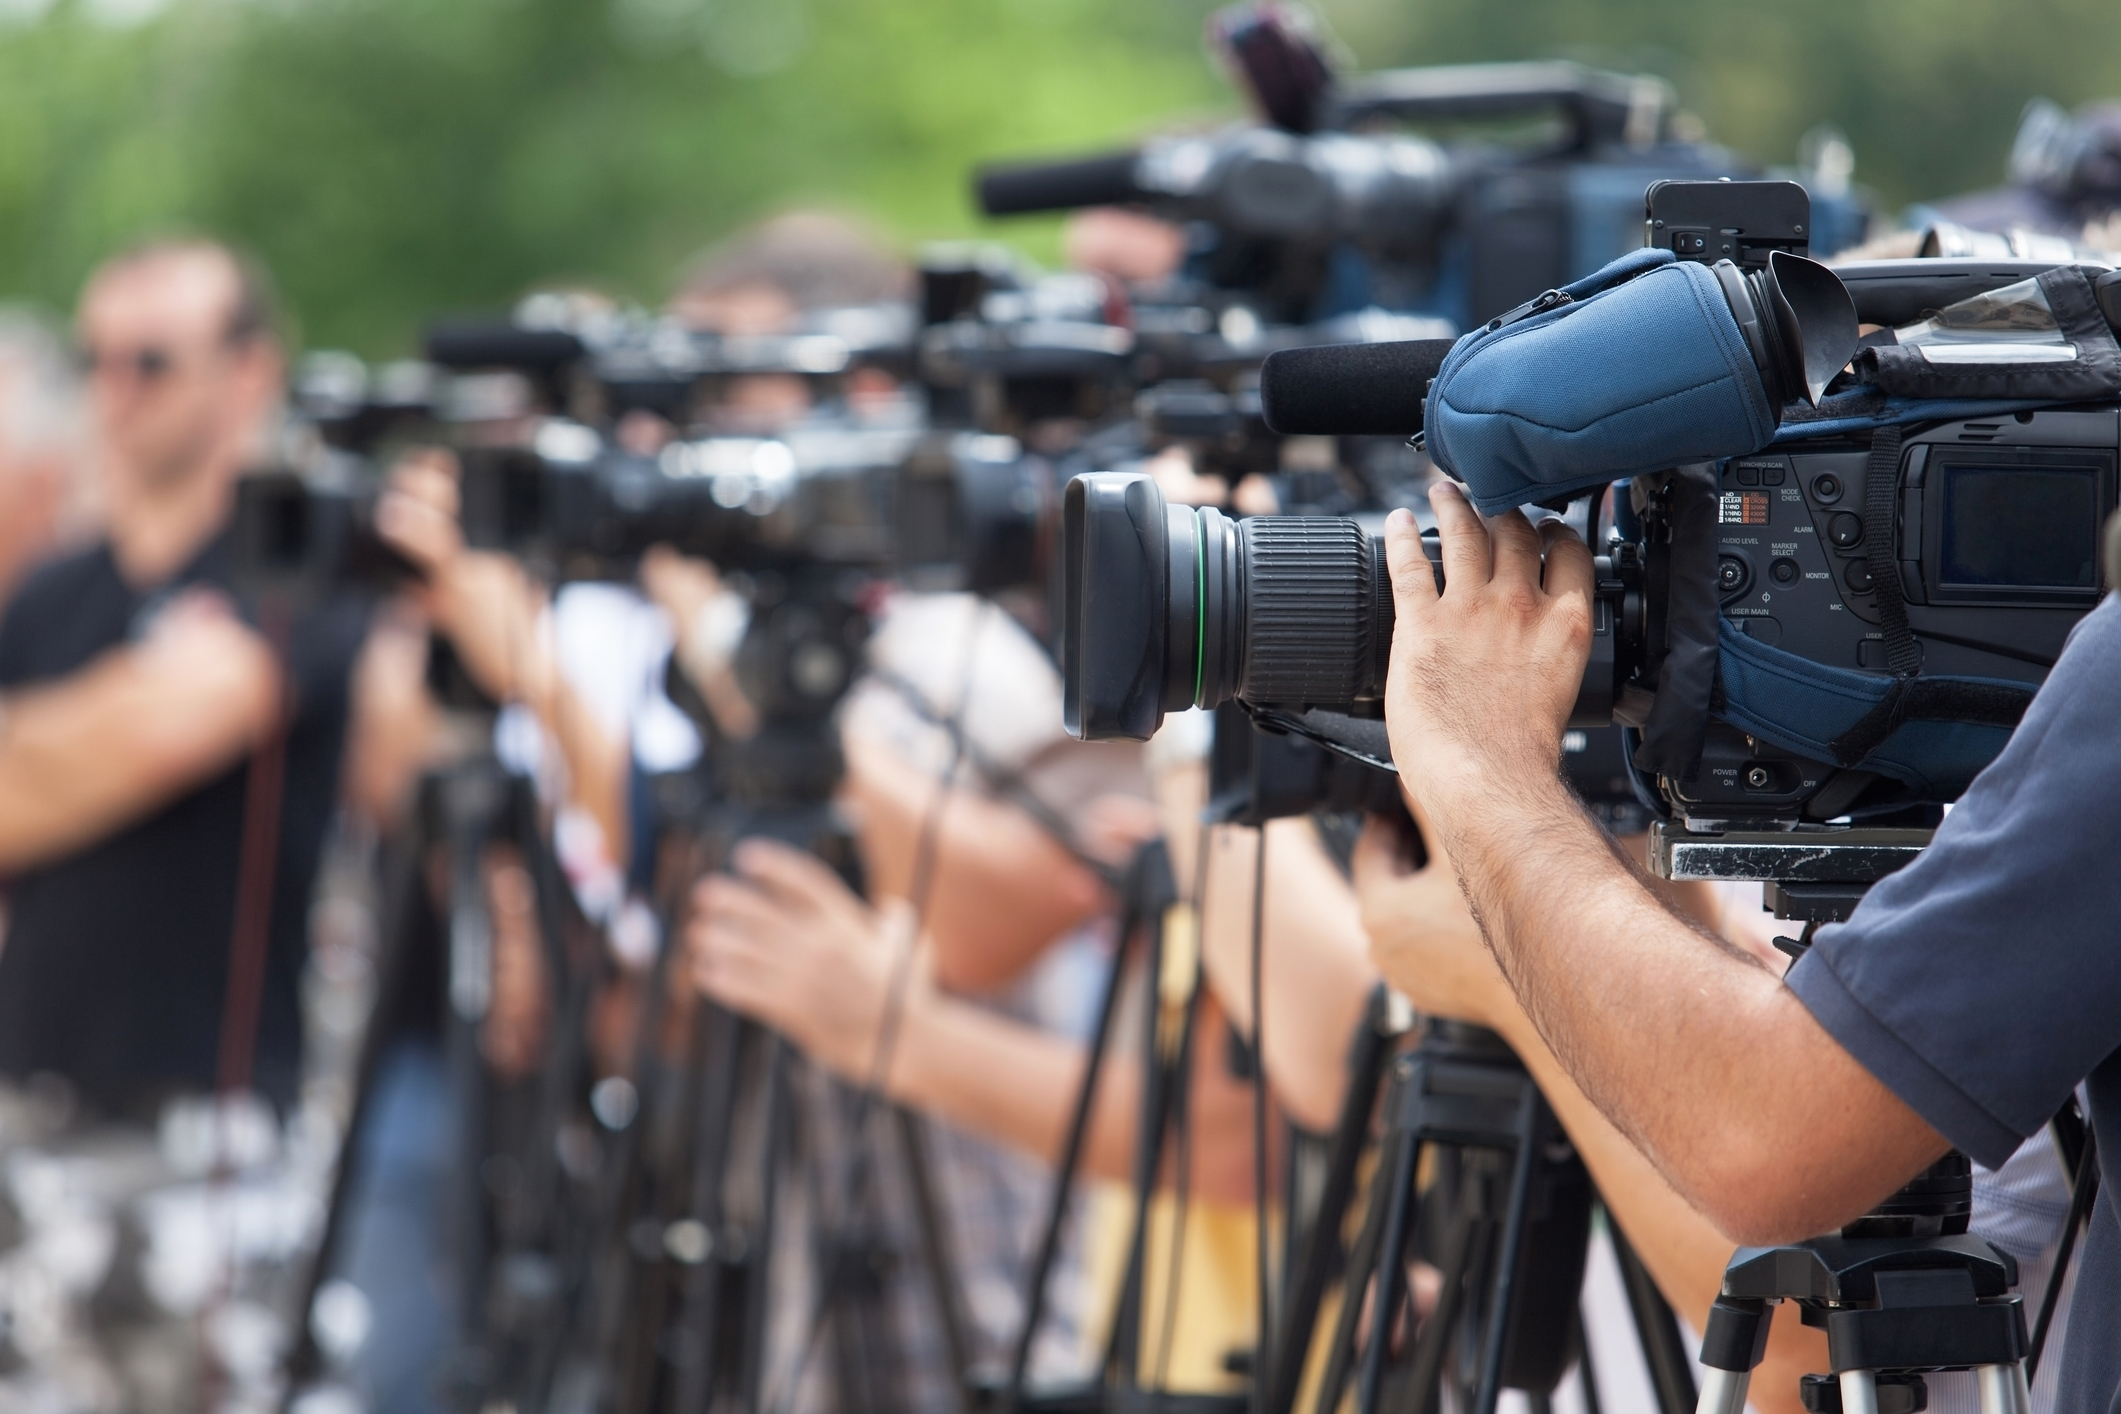 The role and responsibilities of media in divided societies. Discuss.